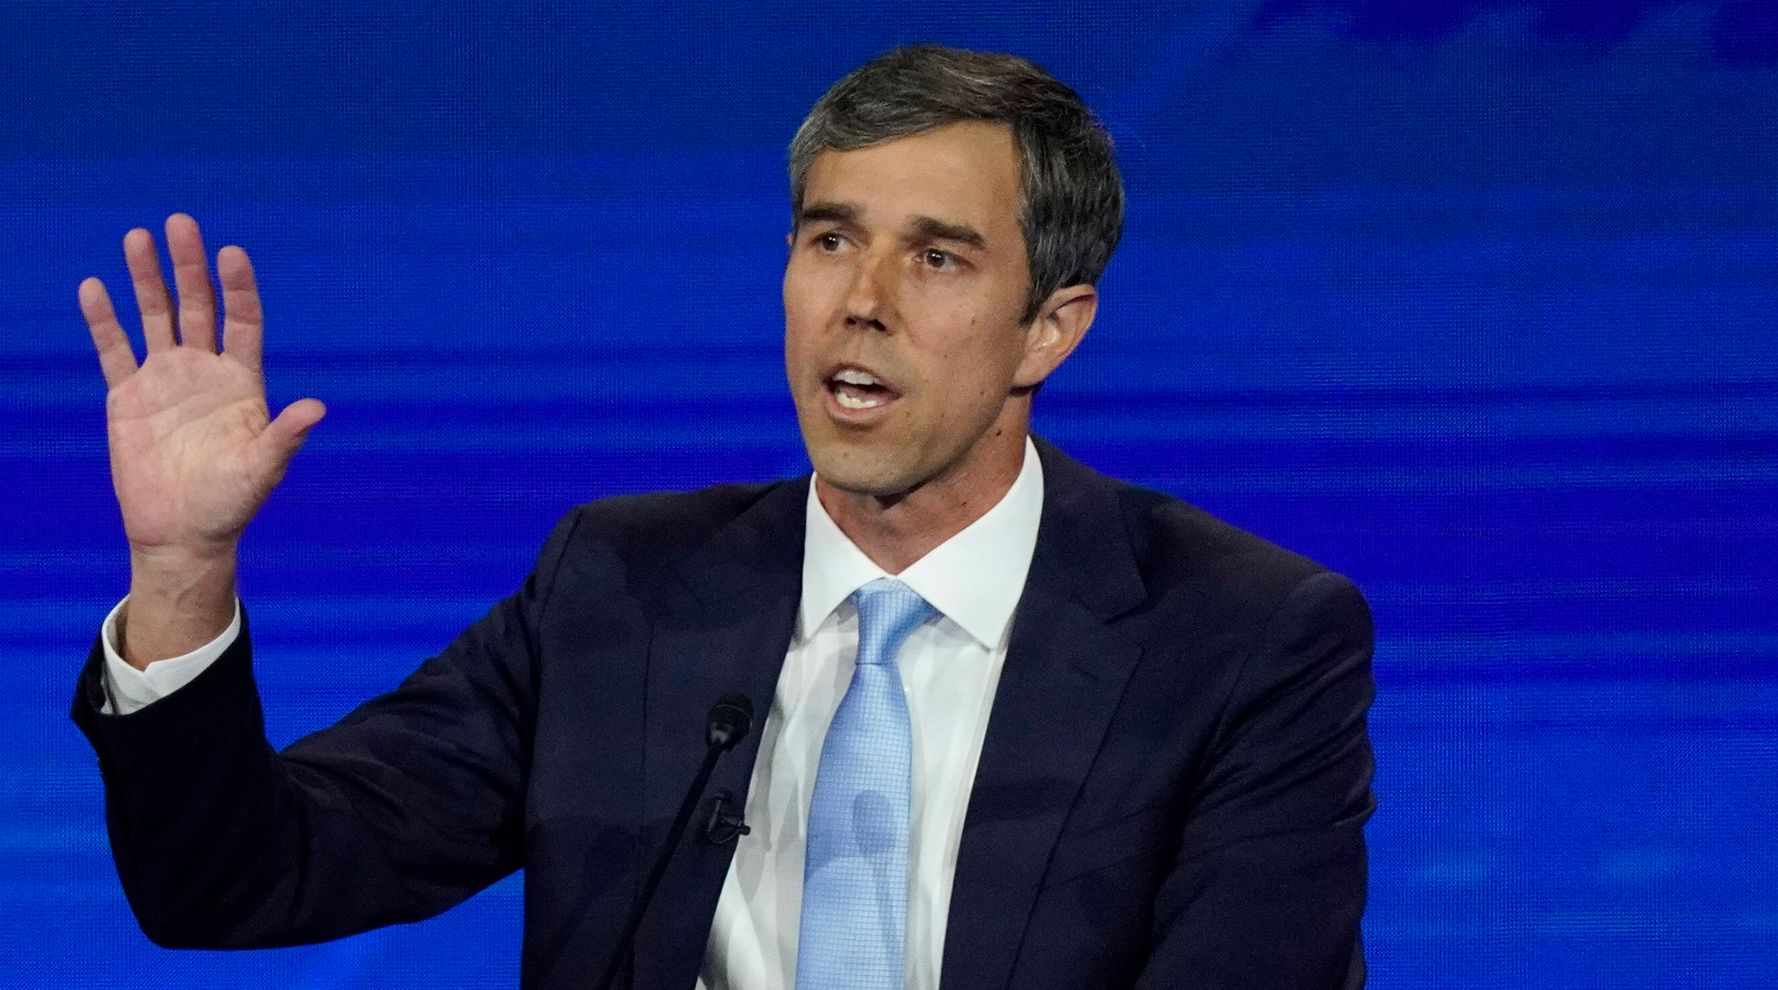 Westlake Legal Group 5d7efbcf2400002e2a7b71db Beto O'Rourke On Biden's Age And Fitness: 'Who The Hell Cares?'